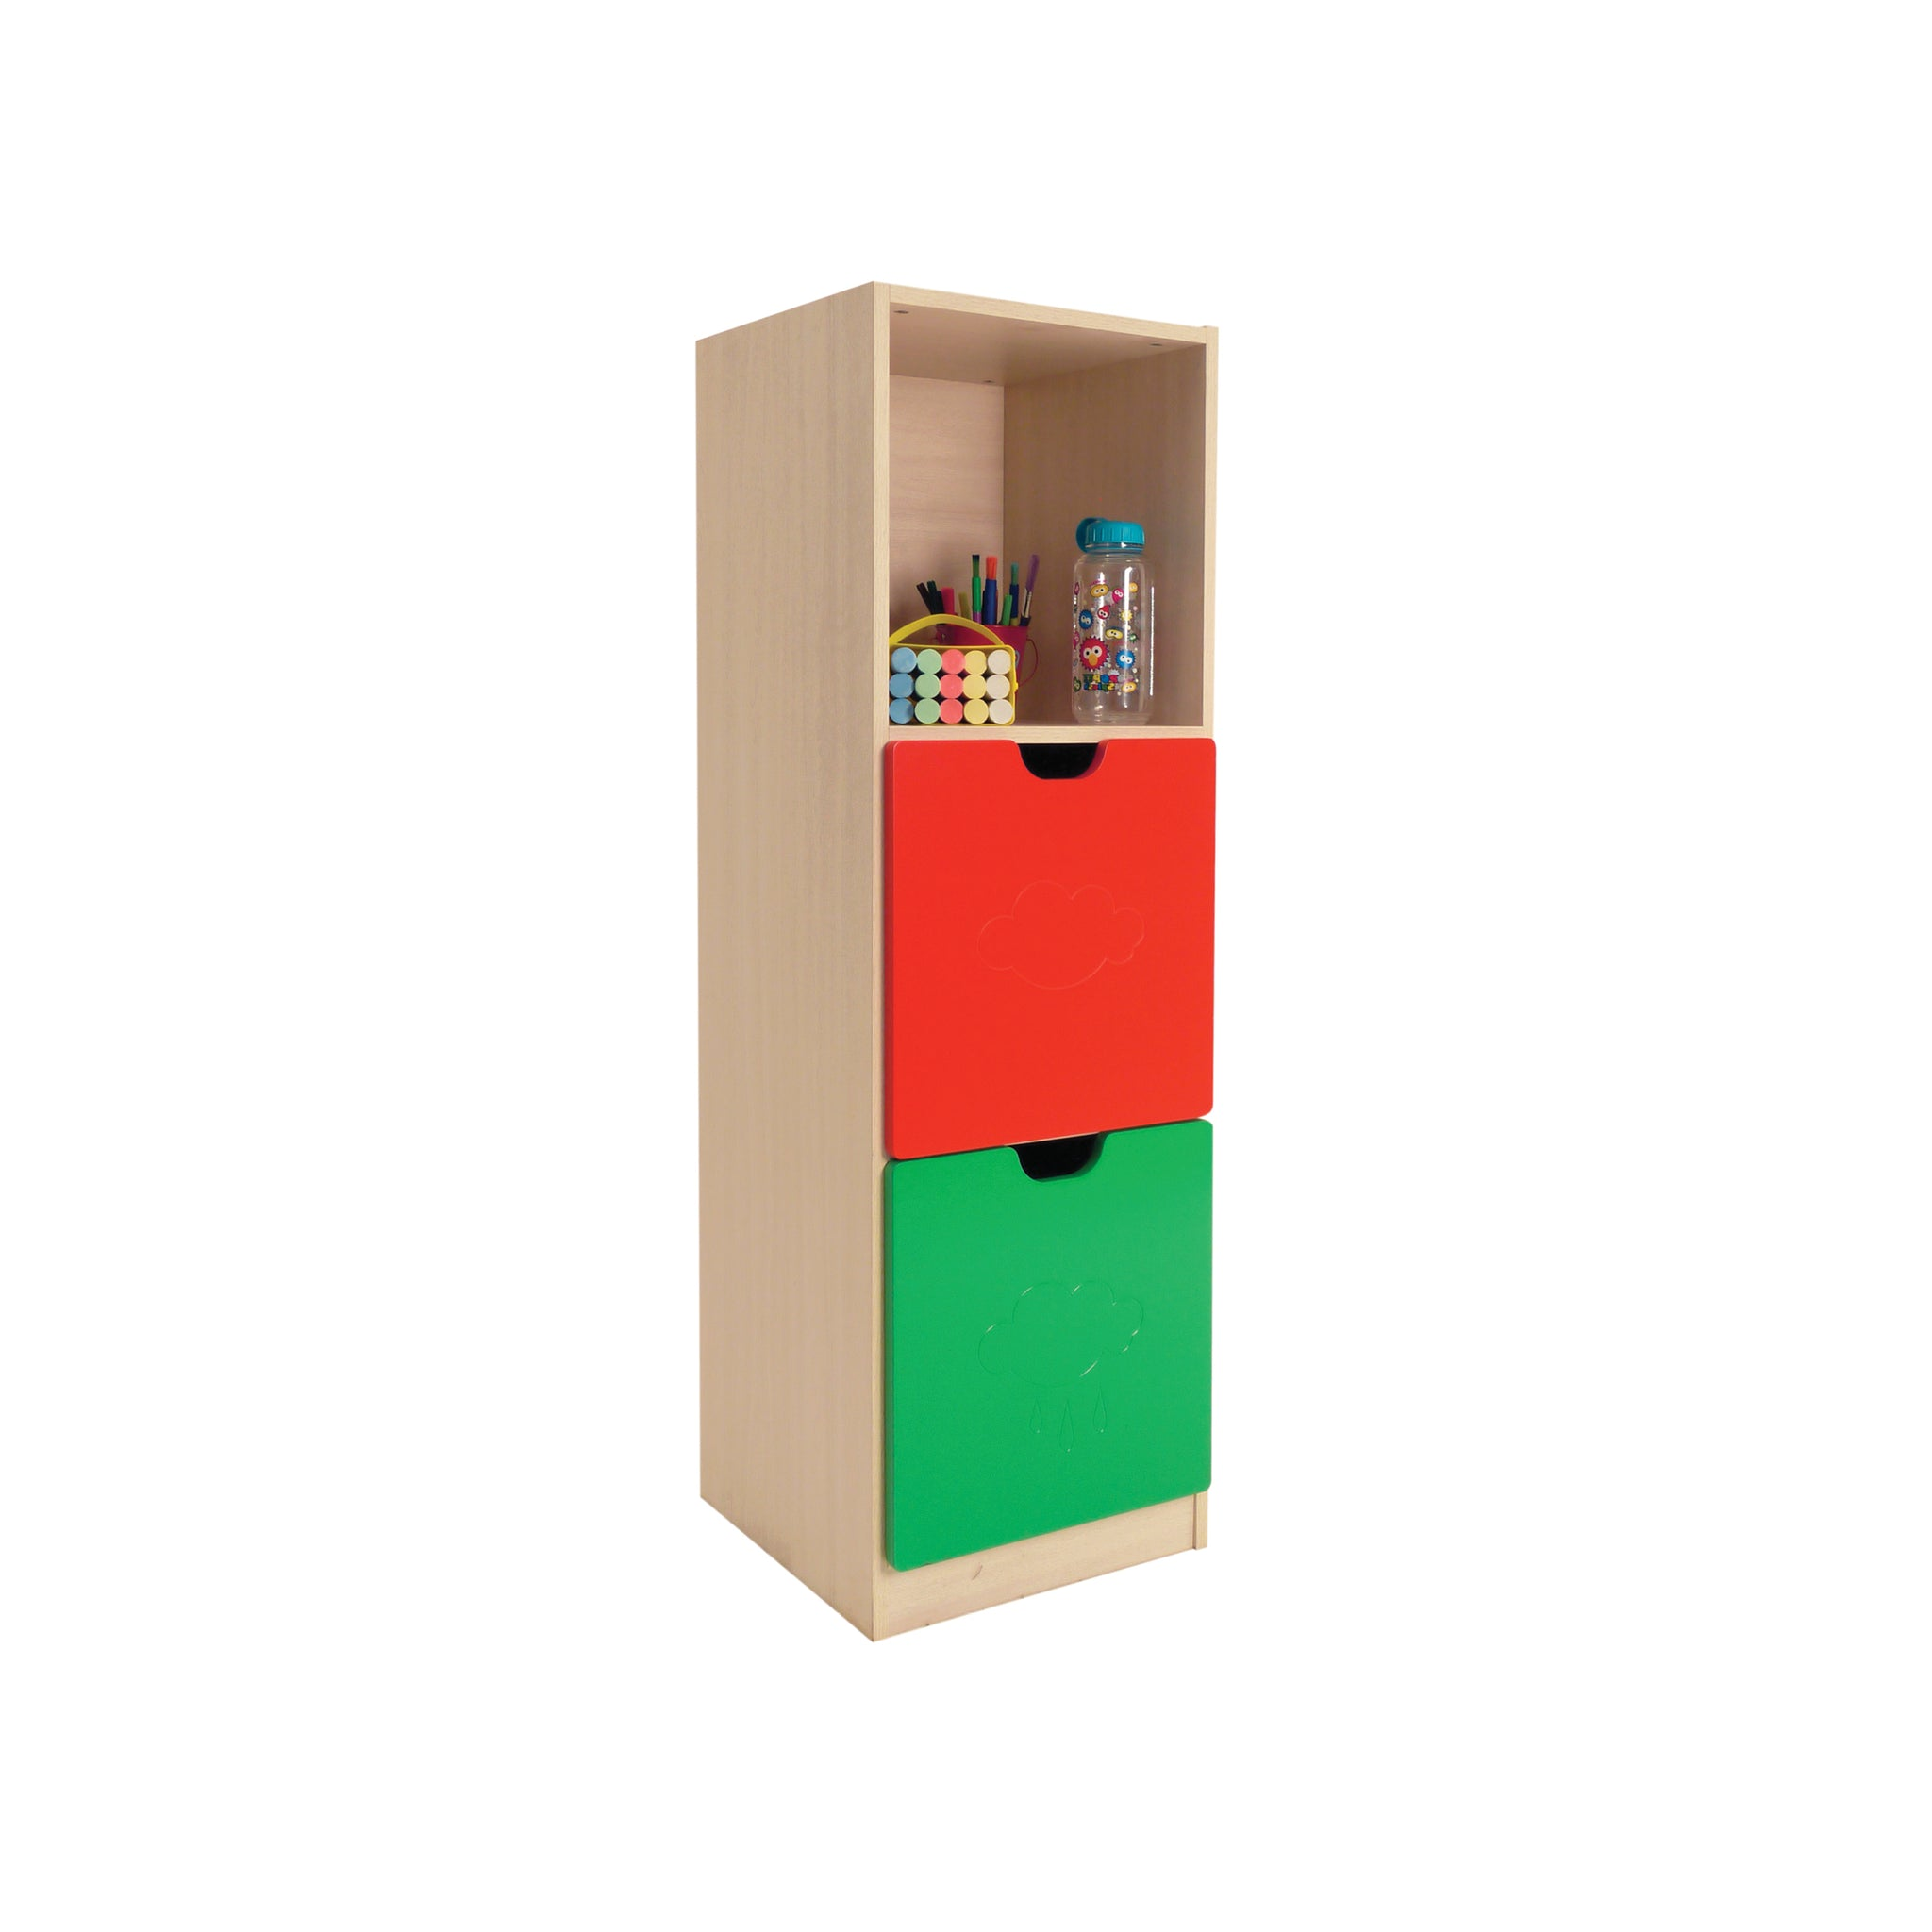 Hedcor 3 Compartment school storage